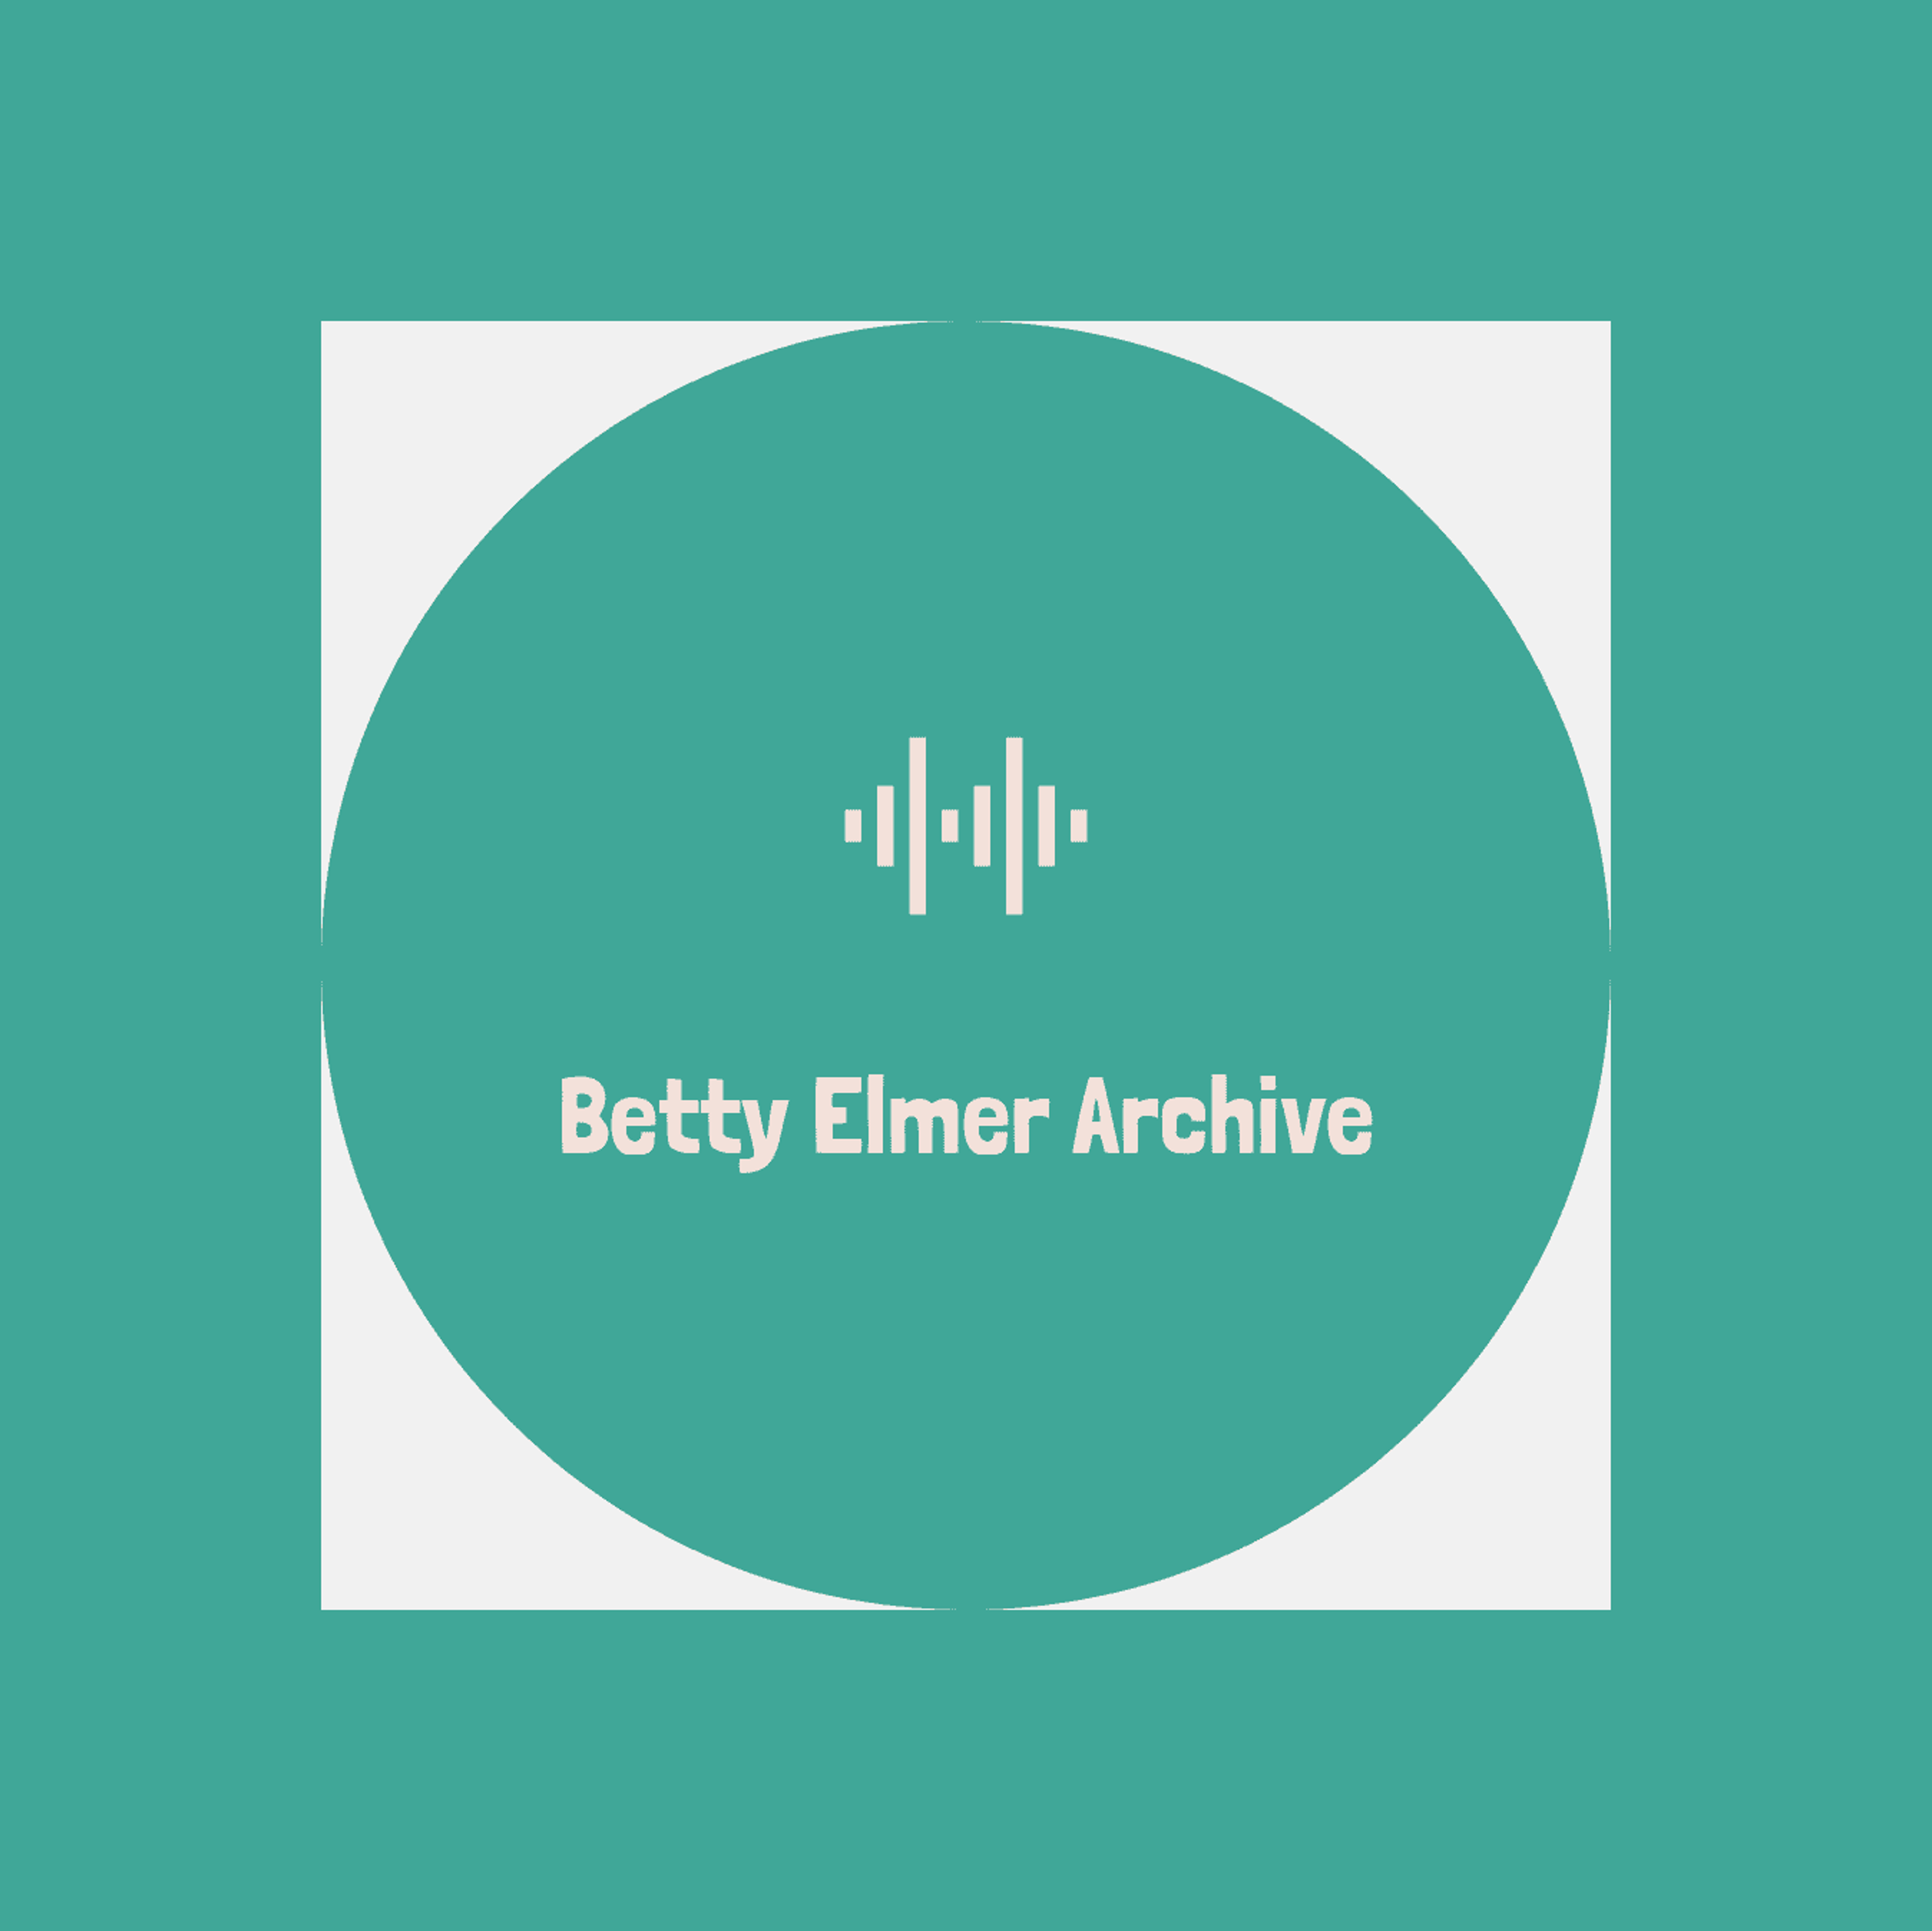 The Betty Elmer Archive